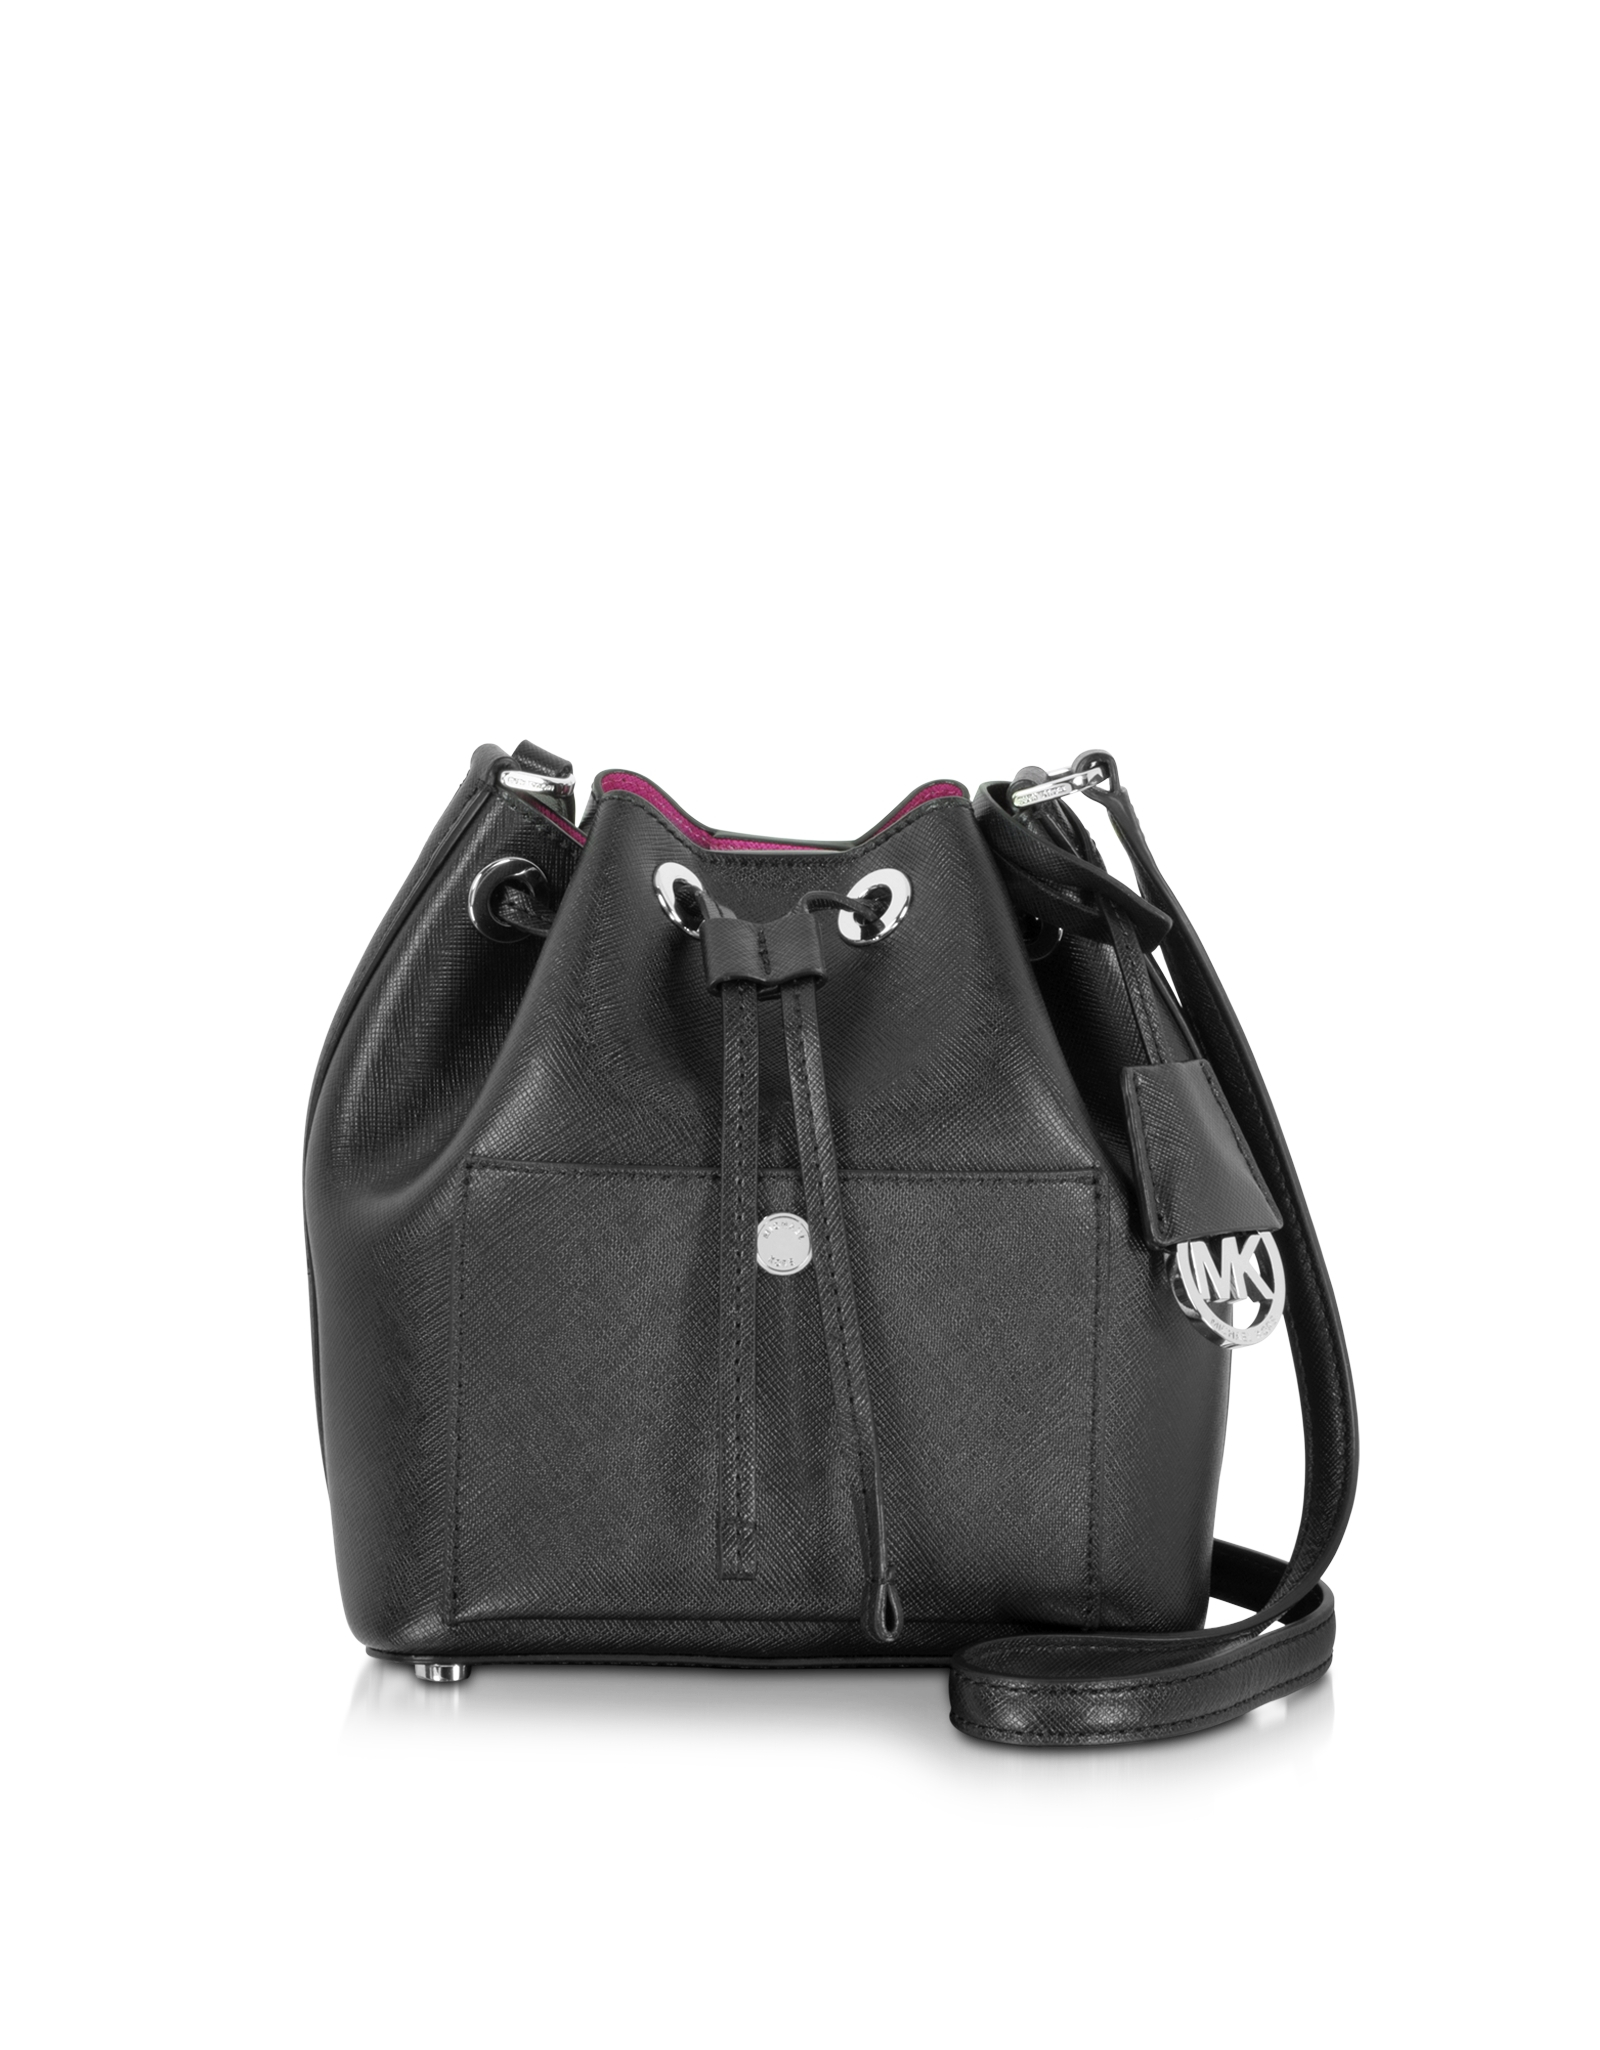 Lyst - Michael Kors Greenwich Saffiano-Leather Bucket Bag in Black 3f33bfa84a36b